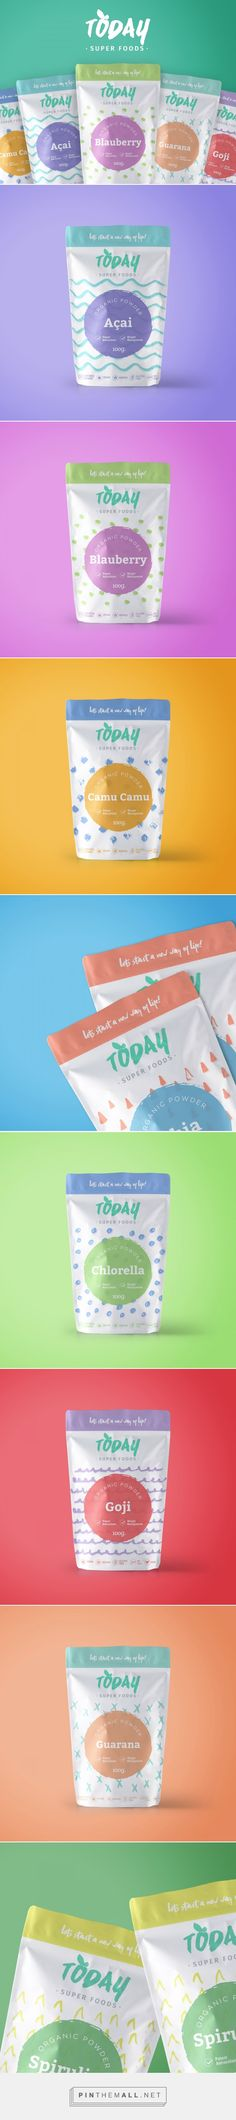 Today, Super Foods - Packaging of the World - Creative Package Design Gallery…